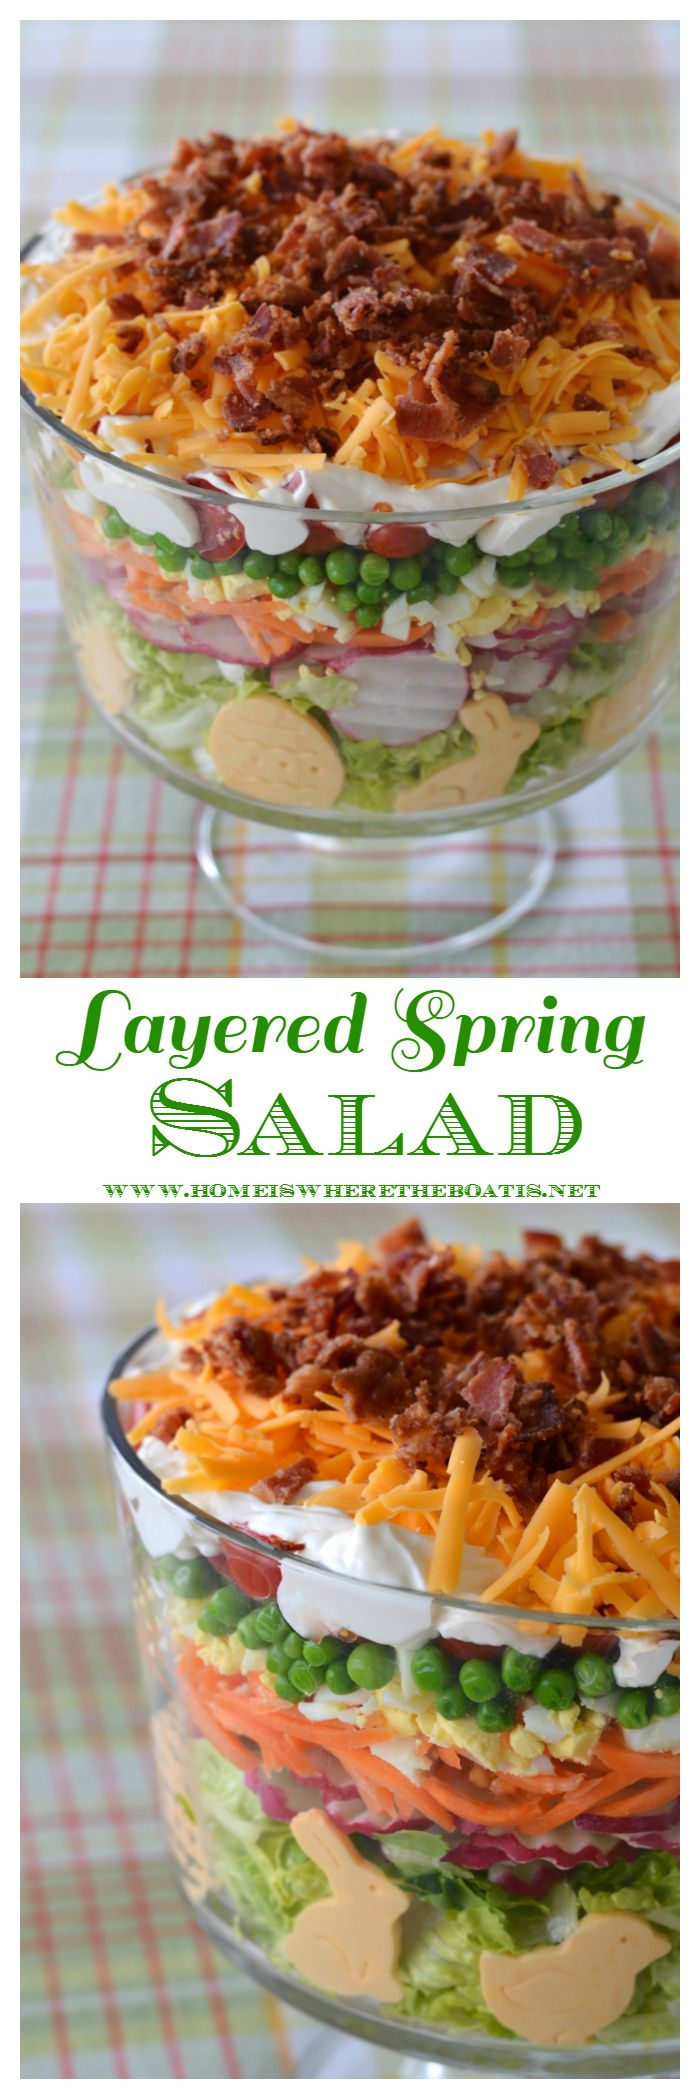 Layered Spring Salad! A make-ahead recipe and flavorful salad for your potluck, family gathering or barbecue! | homeiswheretheboatis.net #Easter